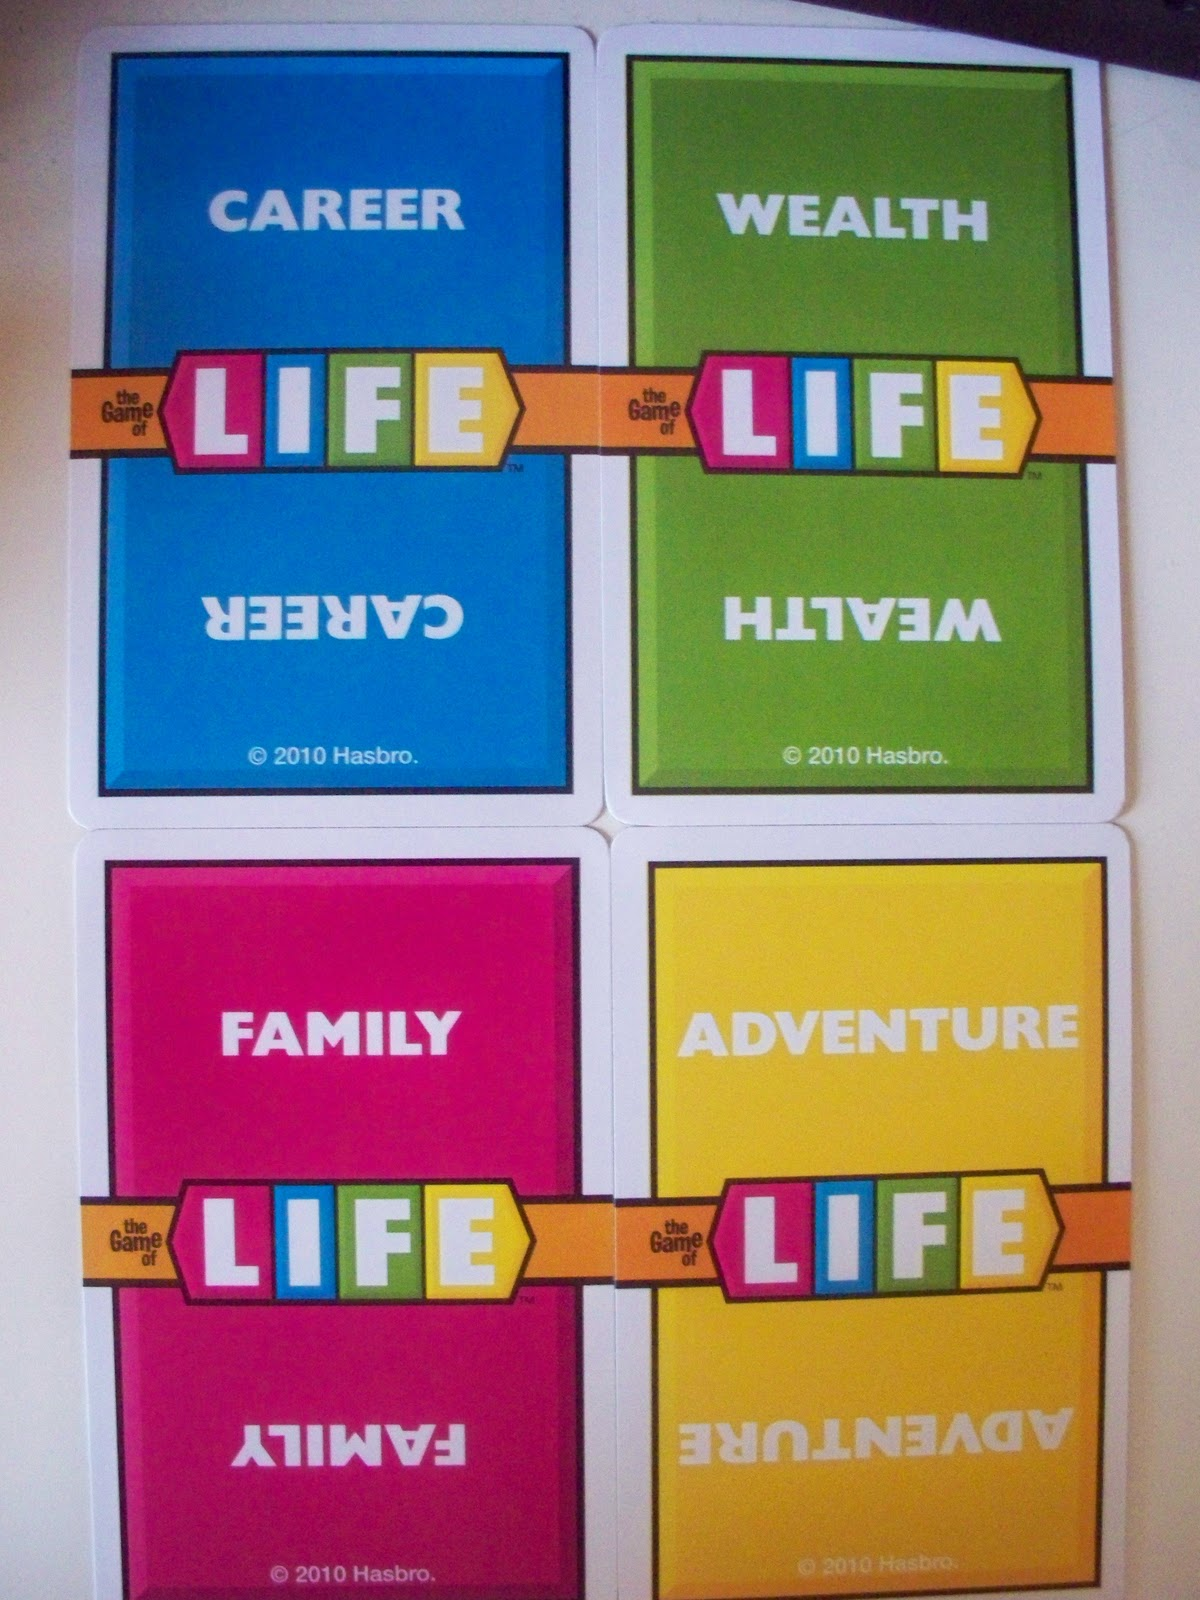 The Game Of Life Job Cards A New Leaf: The Gaming...